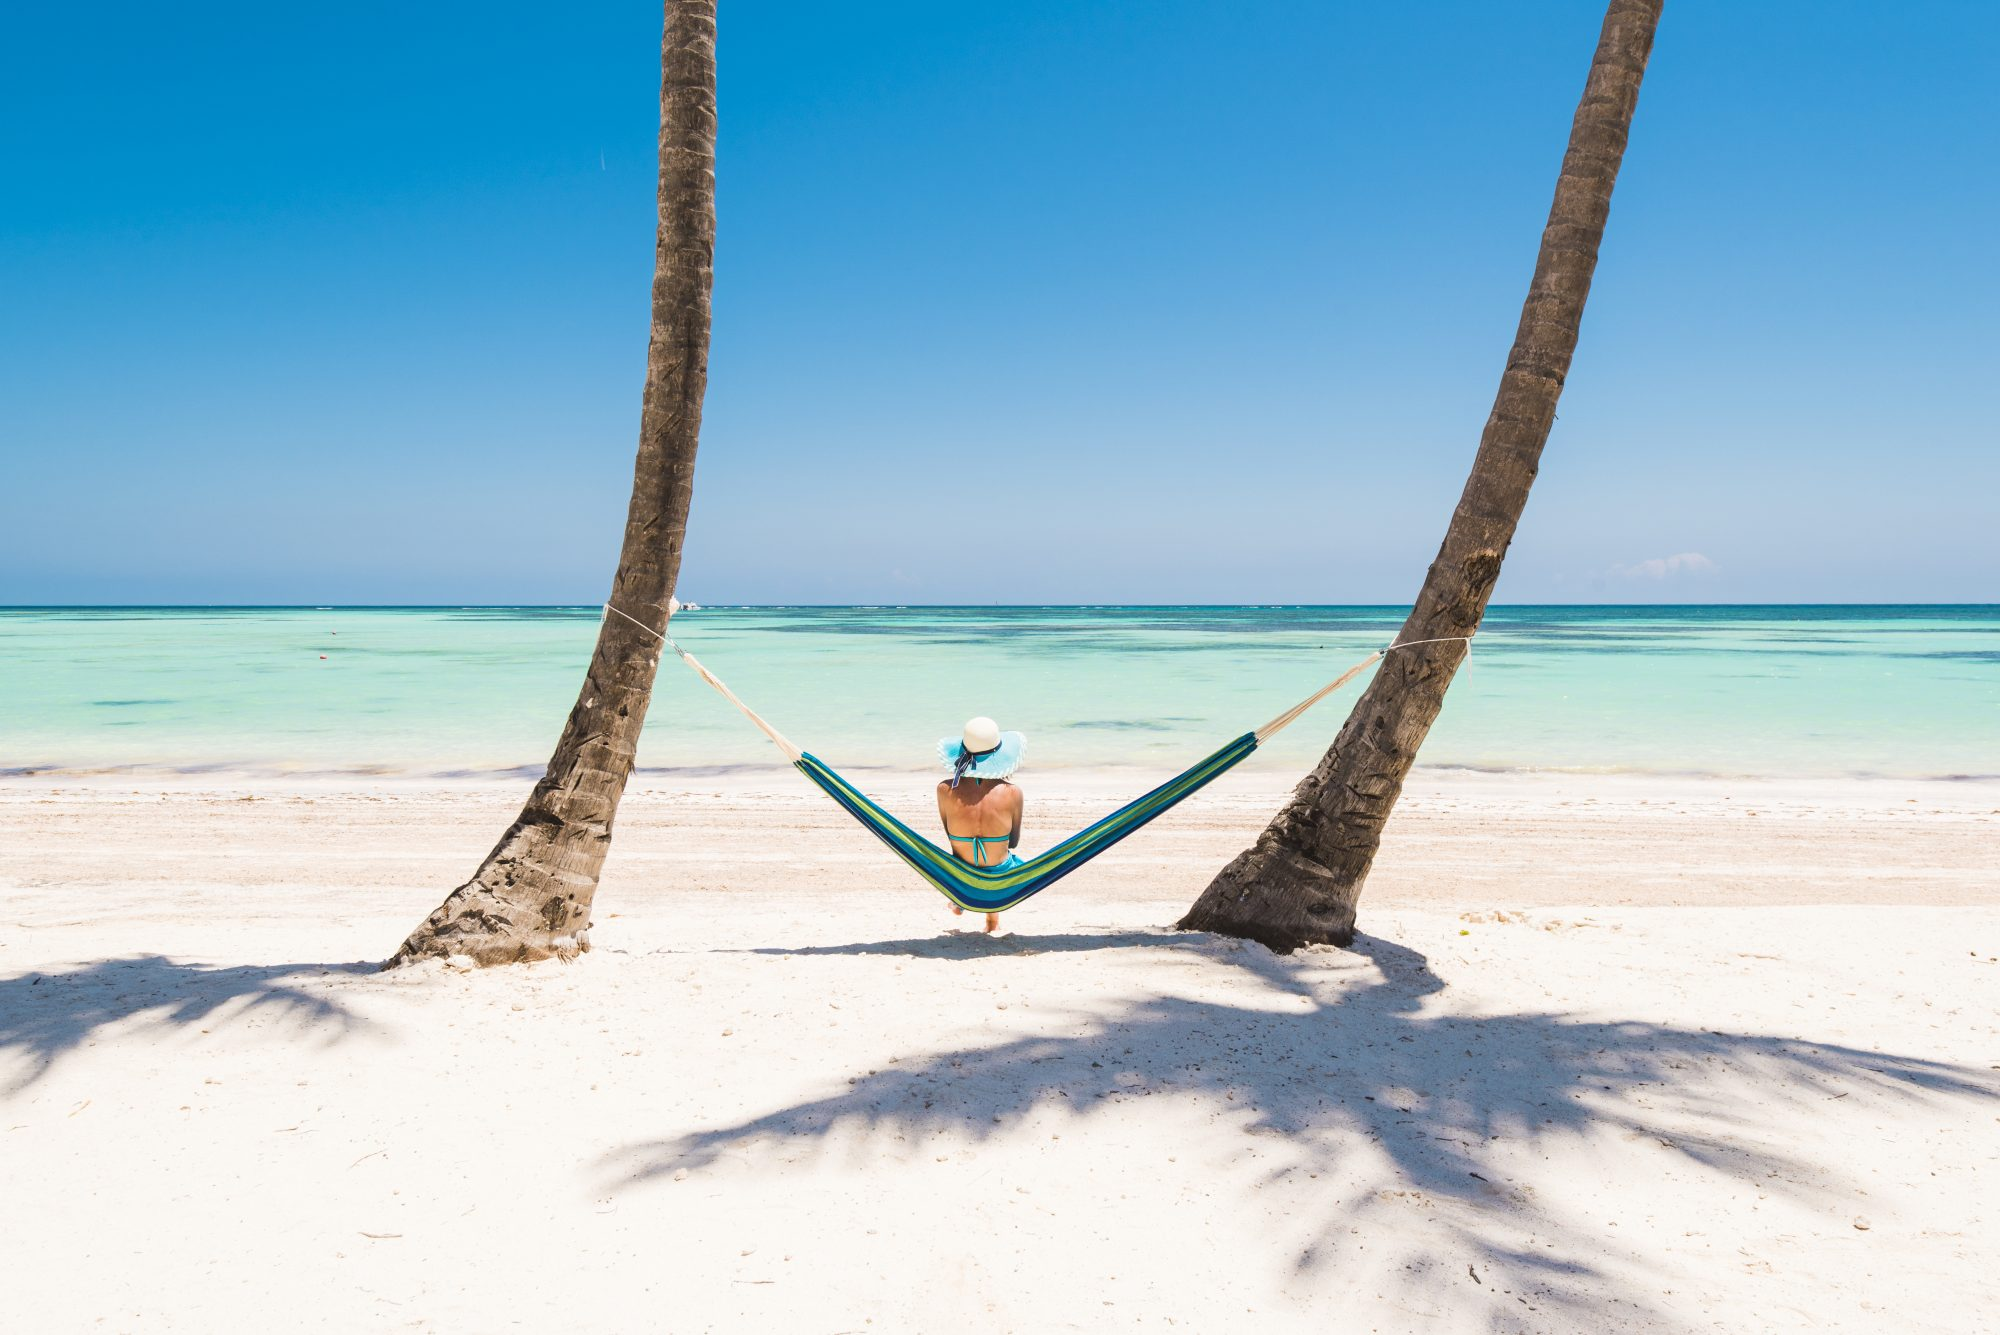 Vacationing in Hammock by Beach